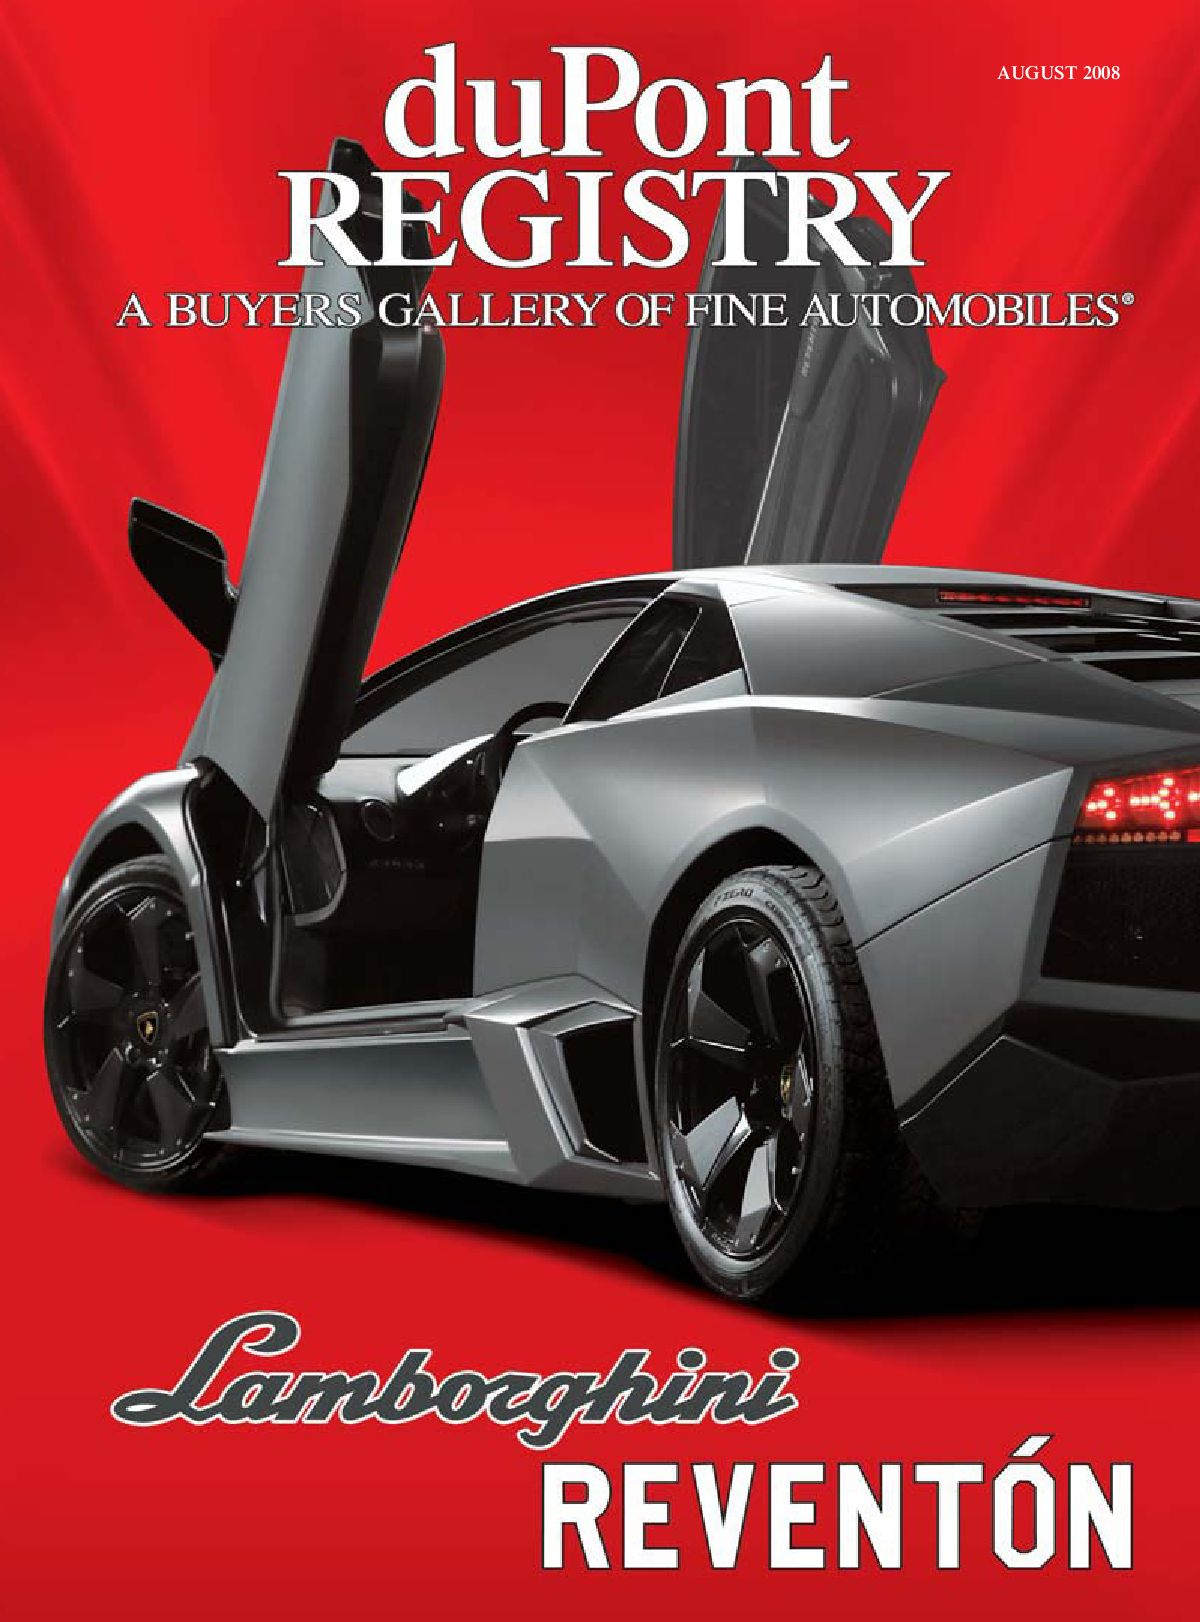 duPontREGISTRY Autos August 2008 by duPont REGISTRY issuu